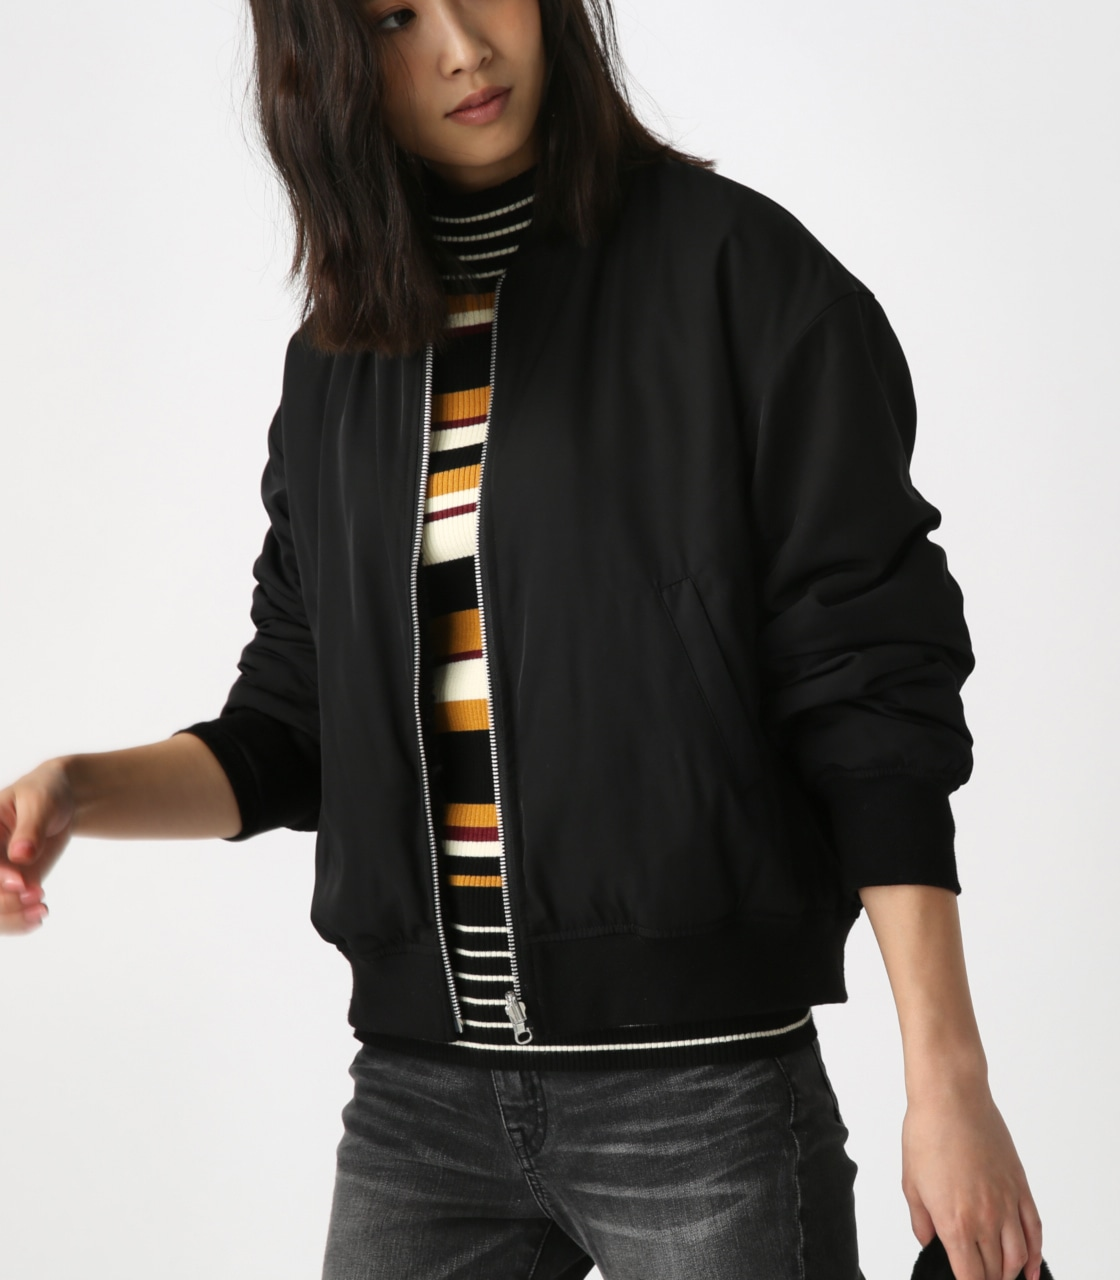 【AZUL BY MOUSSY】リバーシブルボアブルゾン 詳細画像 BLK 1